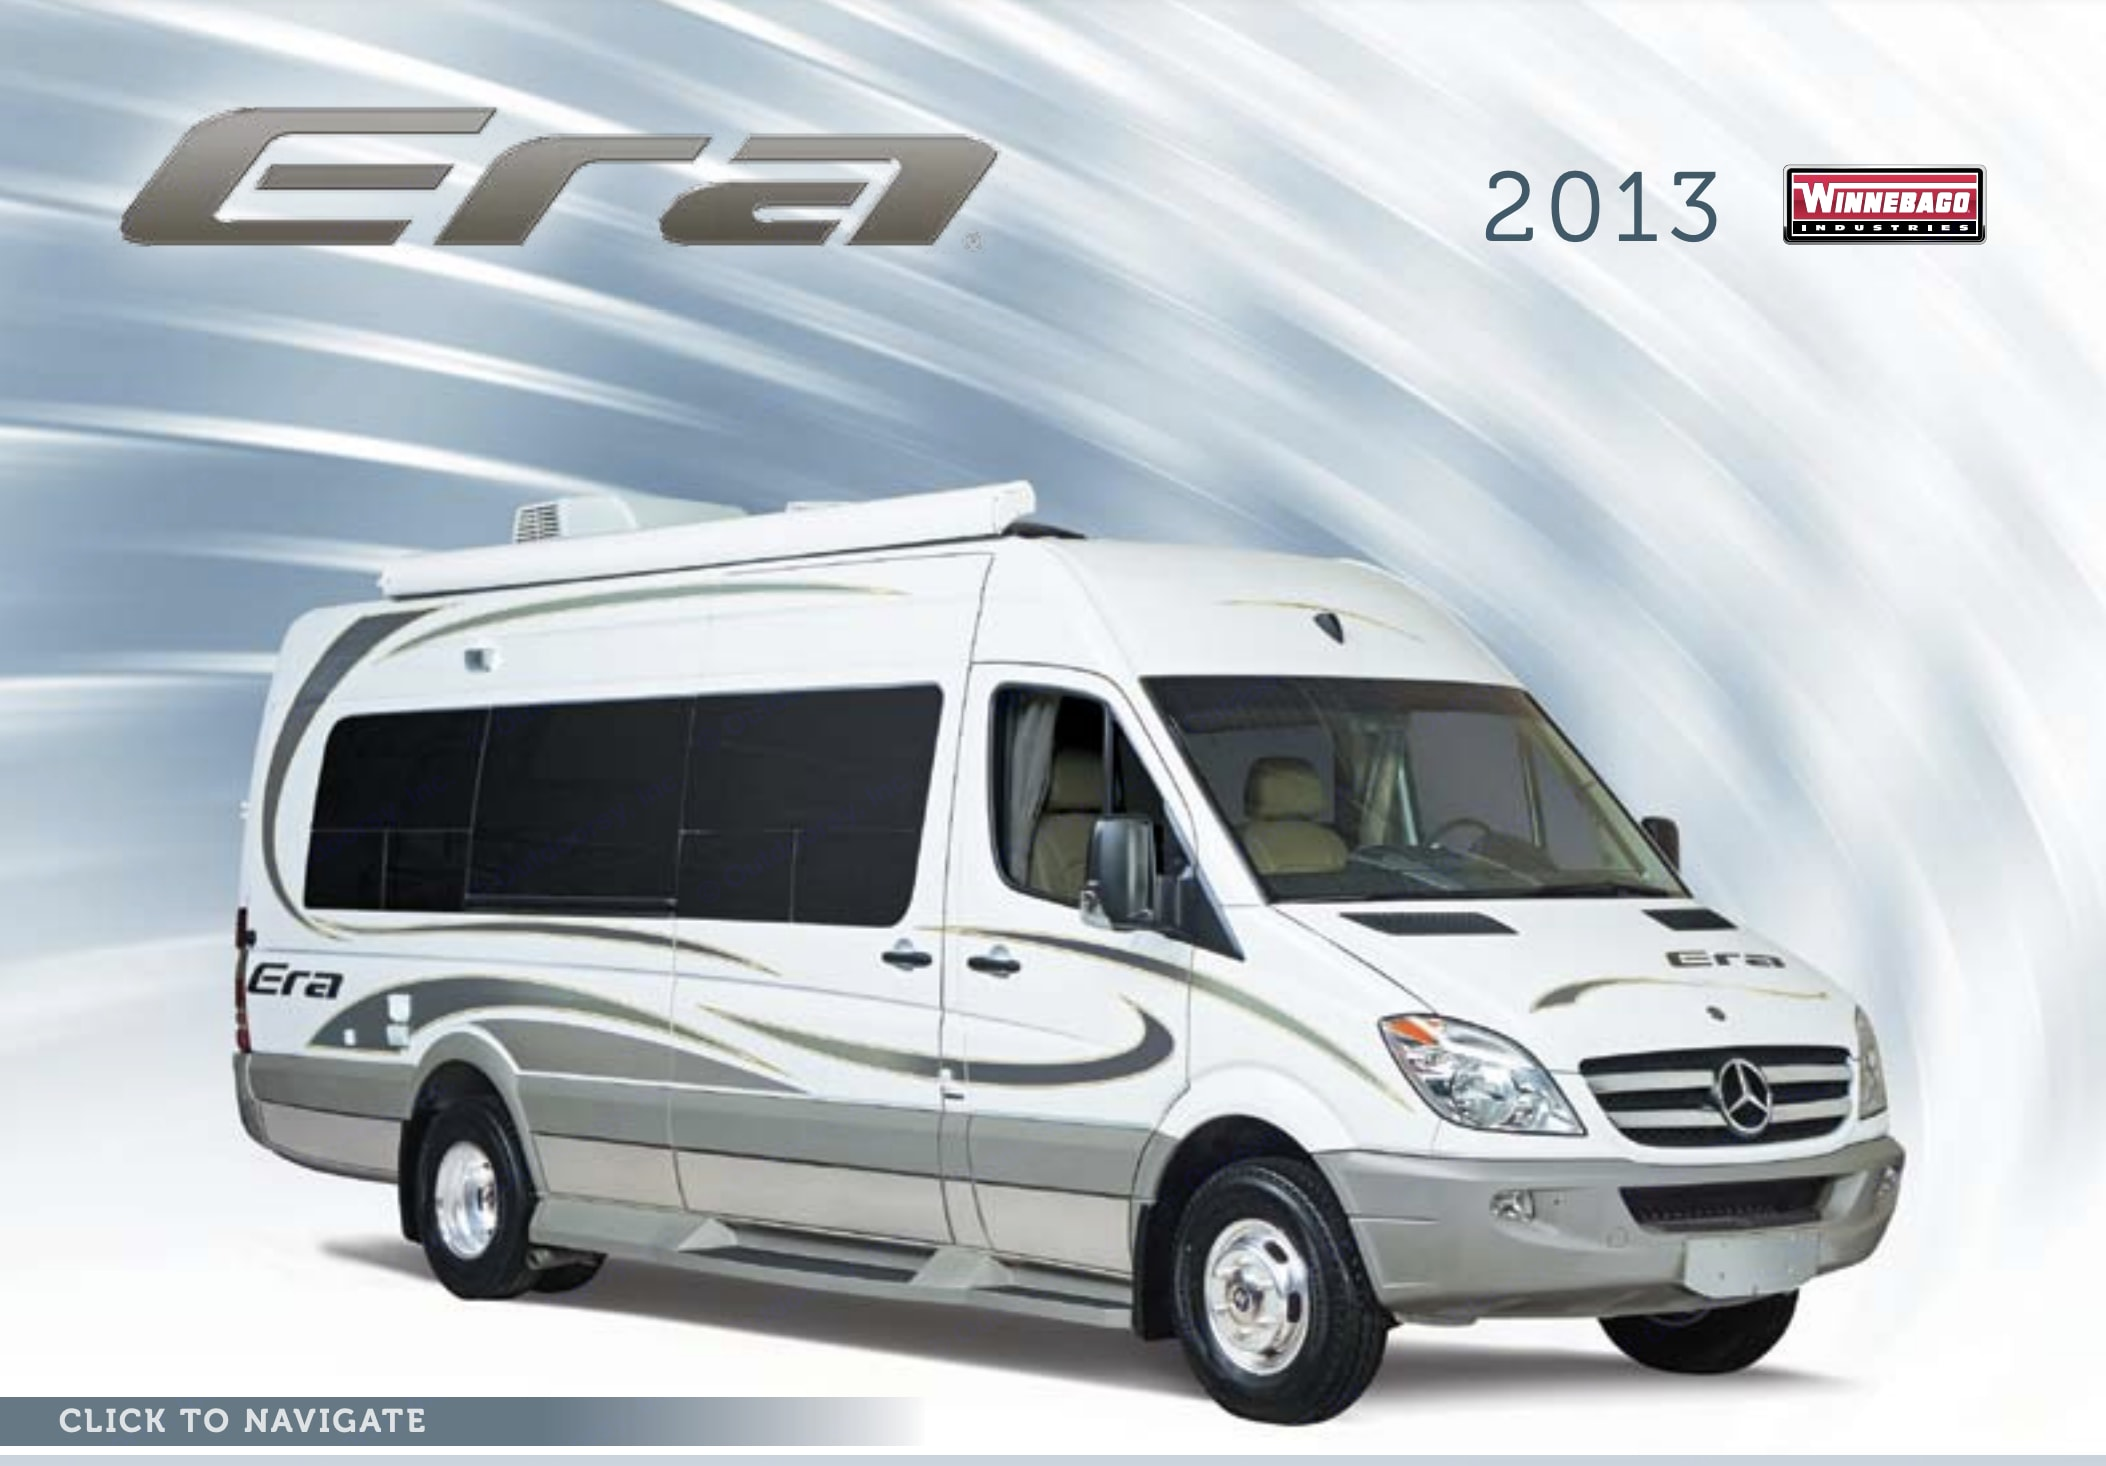 Winnebago Era 2013